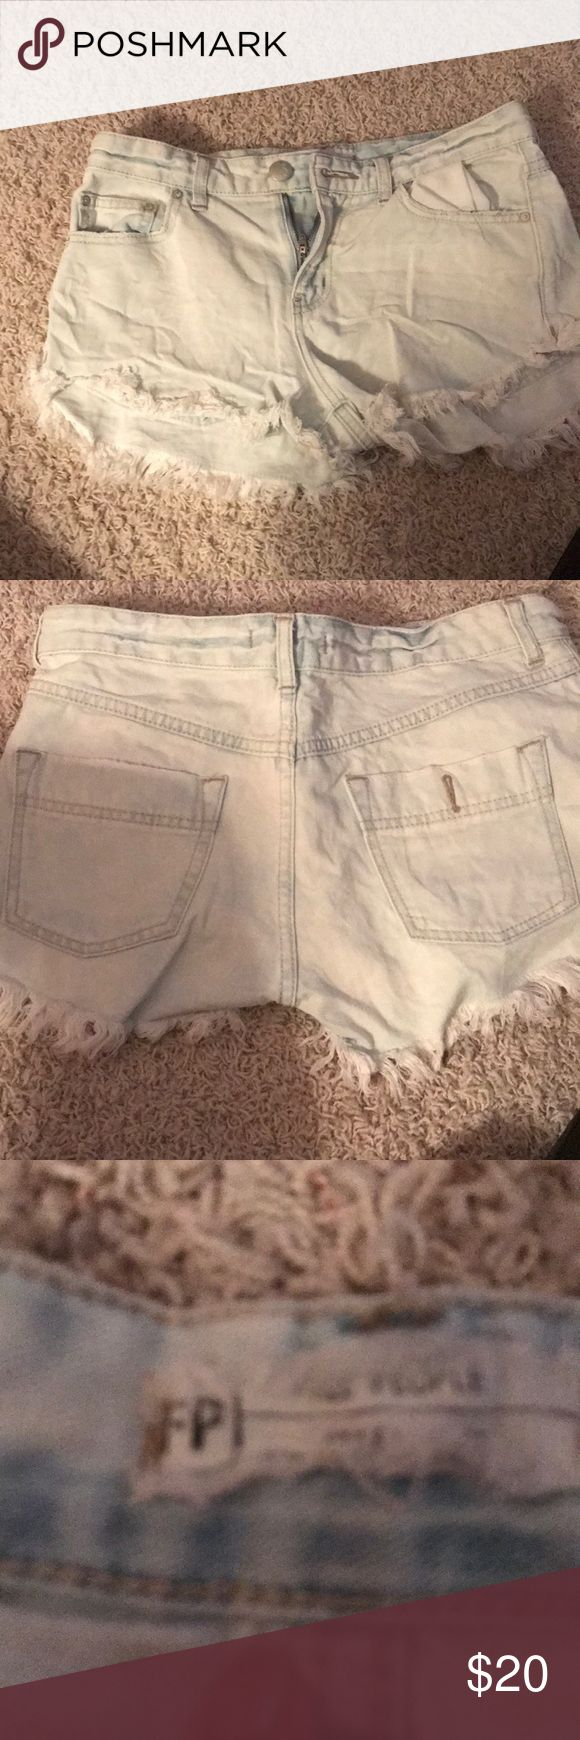 Light wash Free People shorts Light wash free People shorts, size 26. Only worn a couple times, natural fraying look Free People Shorts Jean Shorts